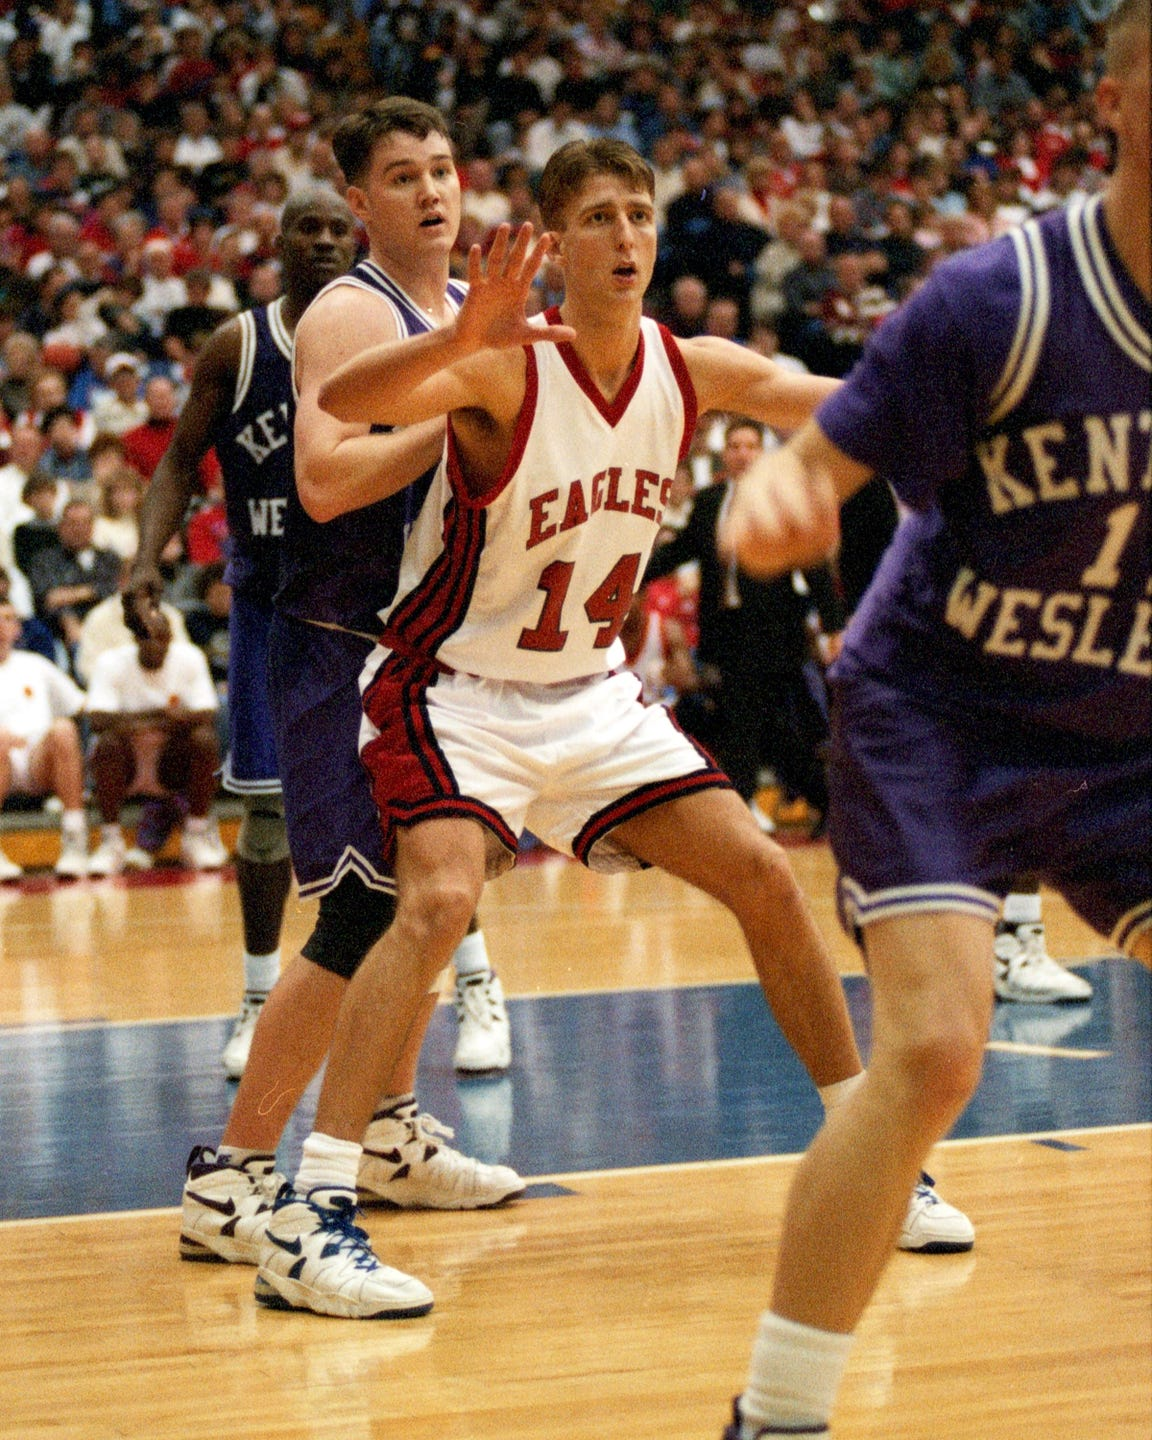 Chad Gilbert posts up a defender during the 1995 season.